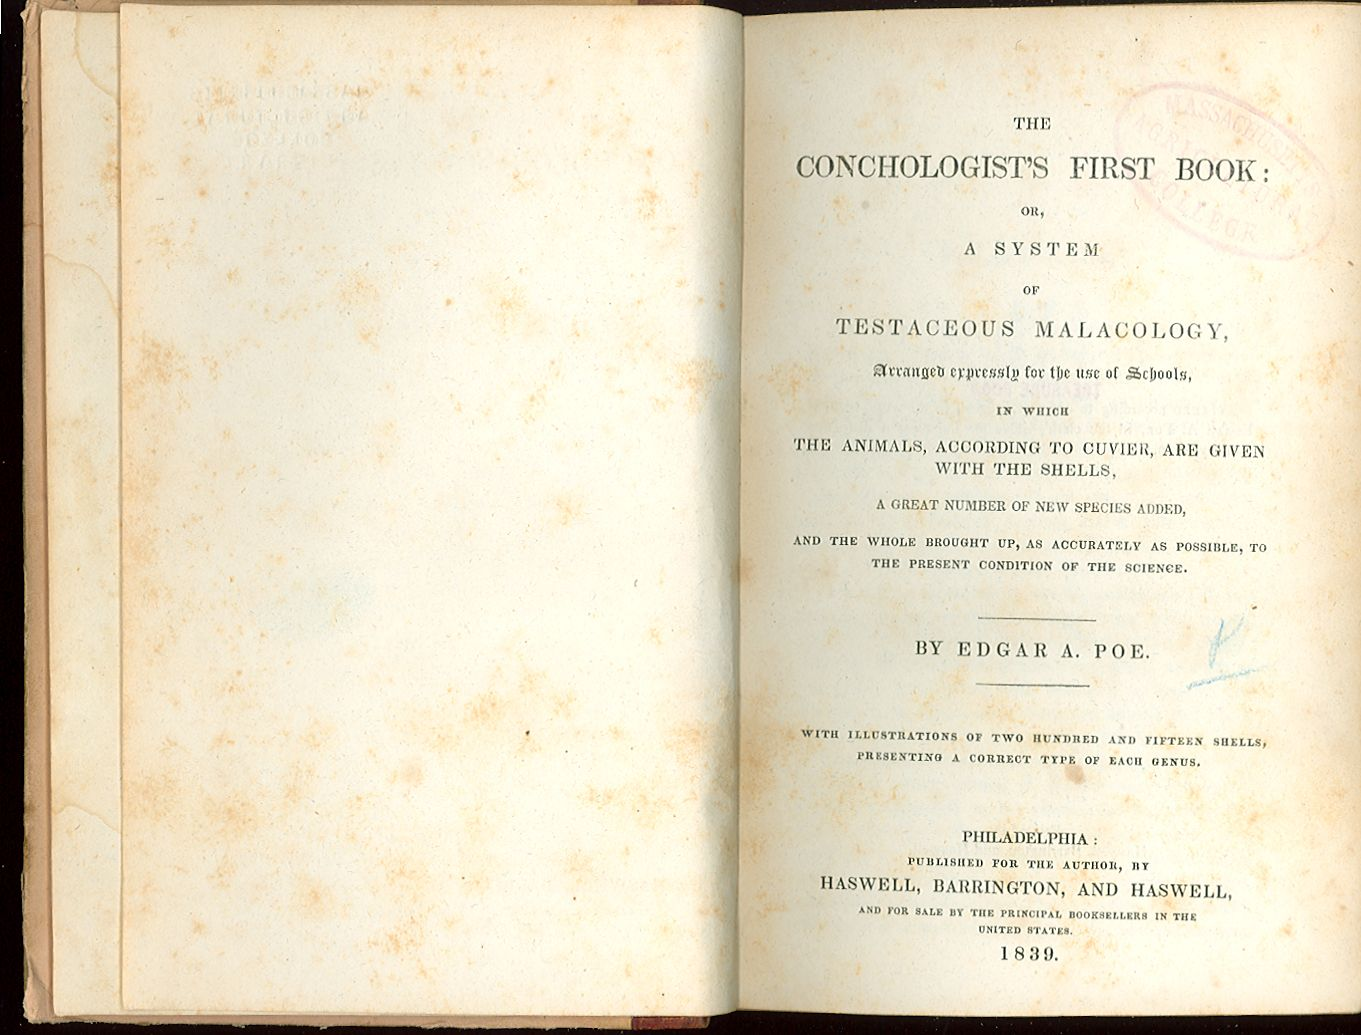 Edgar Allan Poe | The conchologist's first book: or, A system of testaceous malacology, arranged expressly for the use of schools, in which the animals, according to Cuvier, are given with the shells, a great number of new species added, and the whole brought up, as accurately as possible, to the present condition of the science (1839)